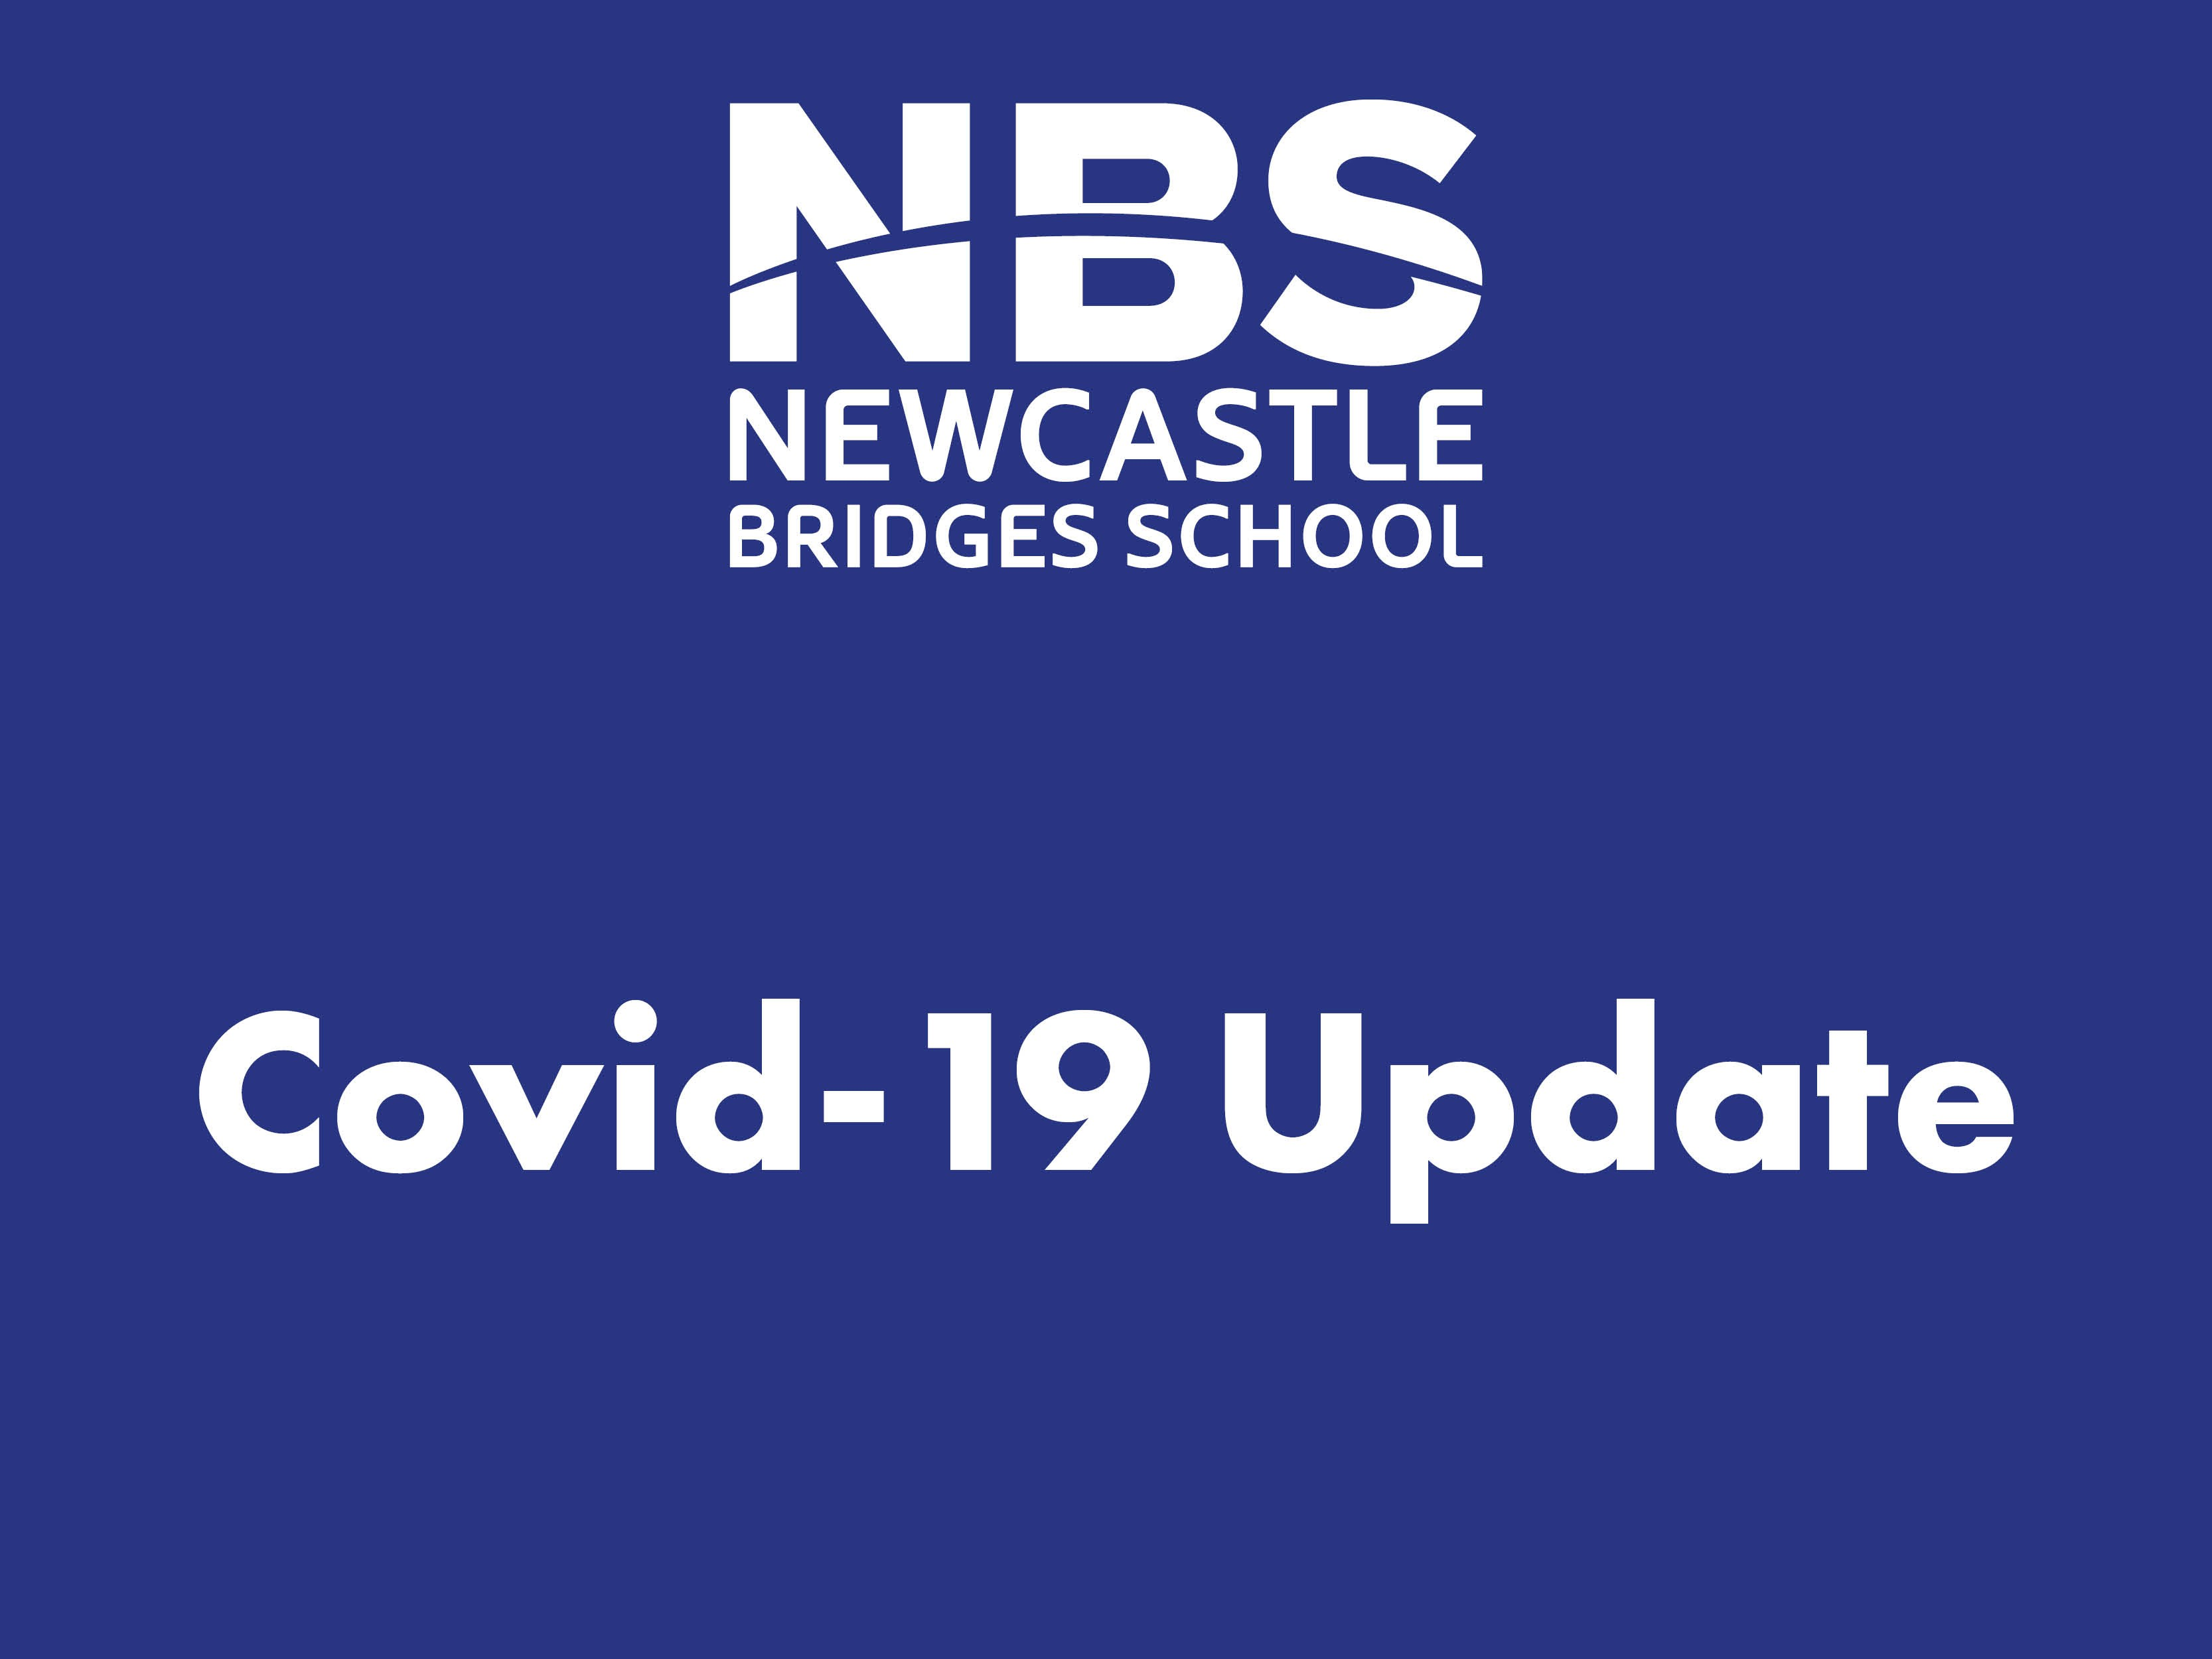 Covid 19 Update - School Closure